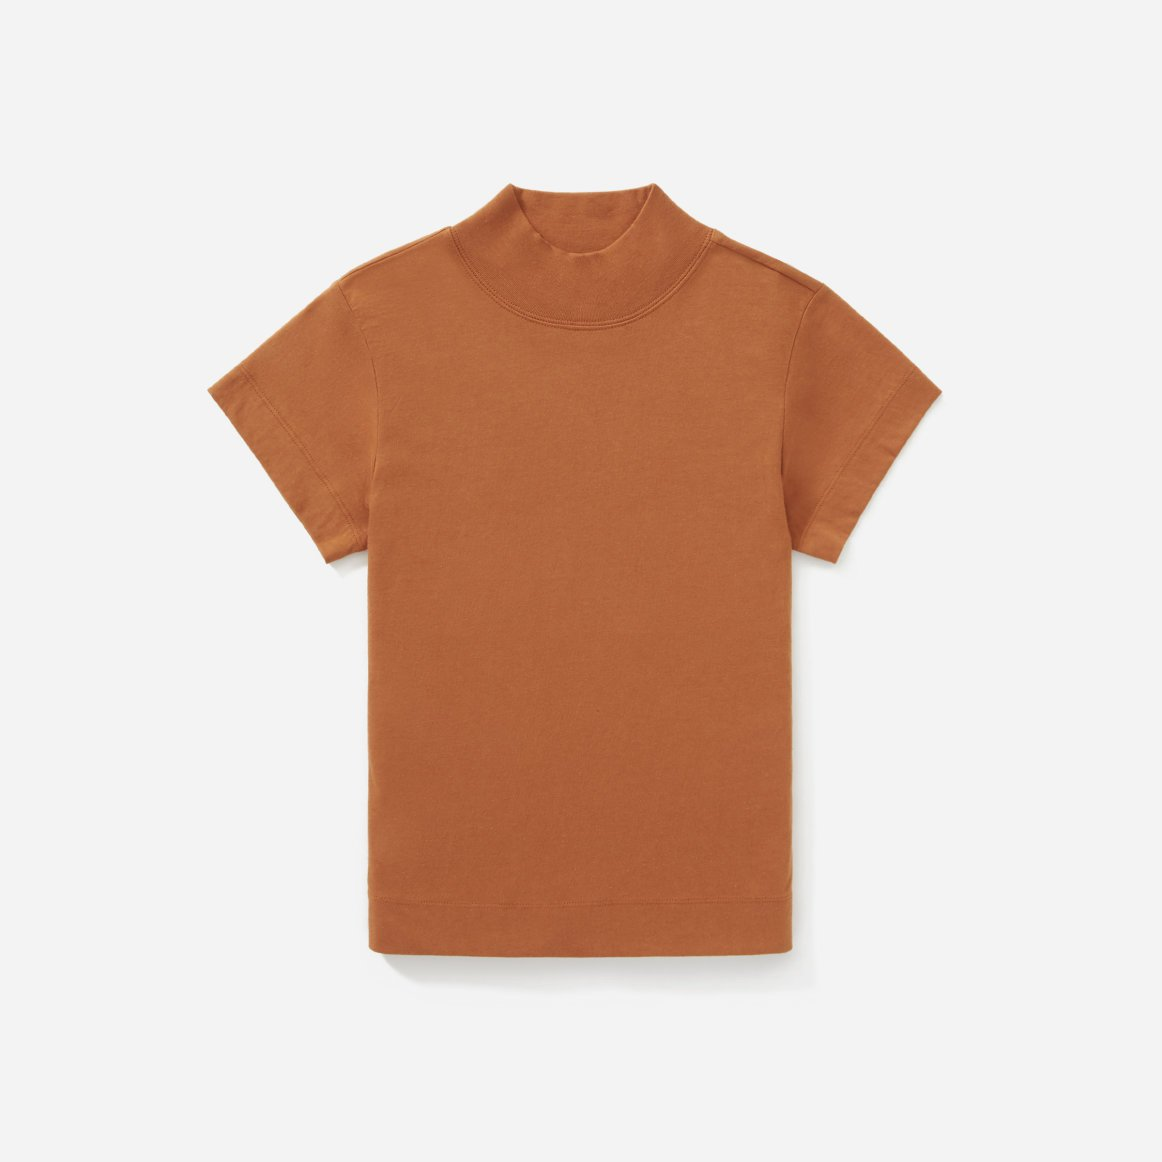 Women's Short-Sleeve Turtleneck Tee | Everlane